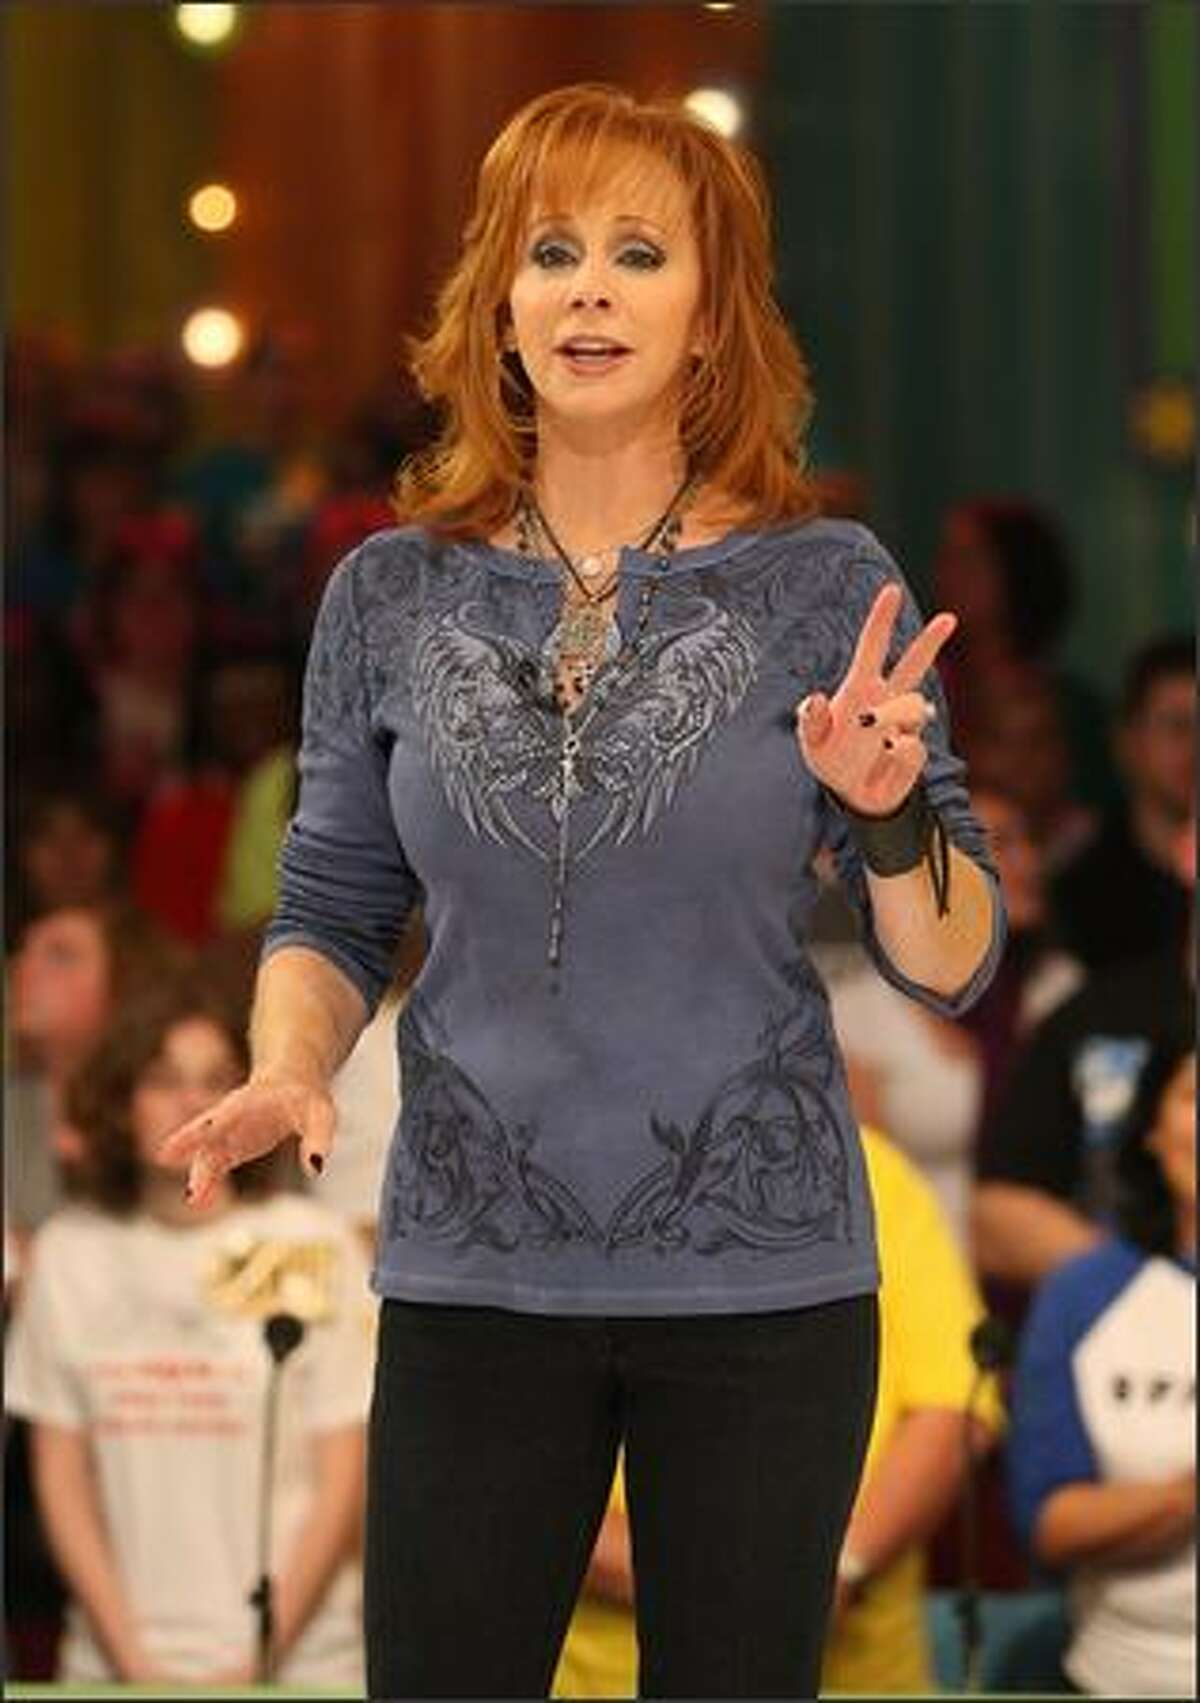 Actress/recording artist Reba McEntire speaks during a segment of